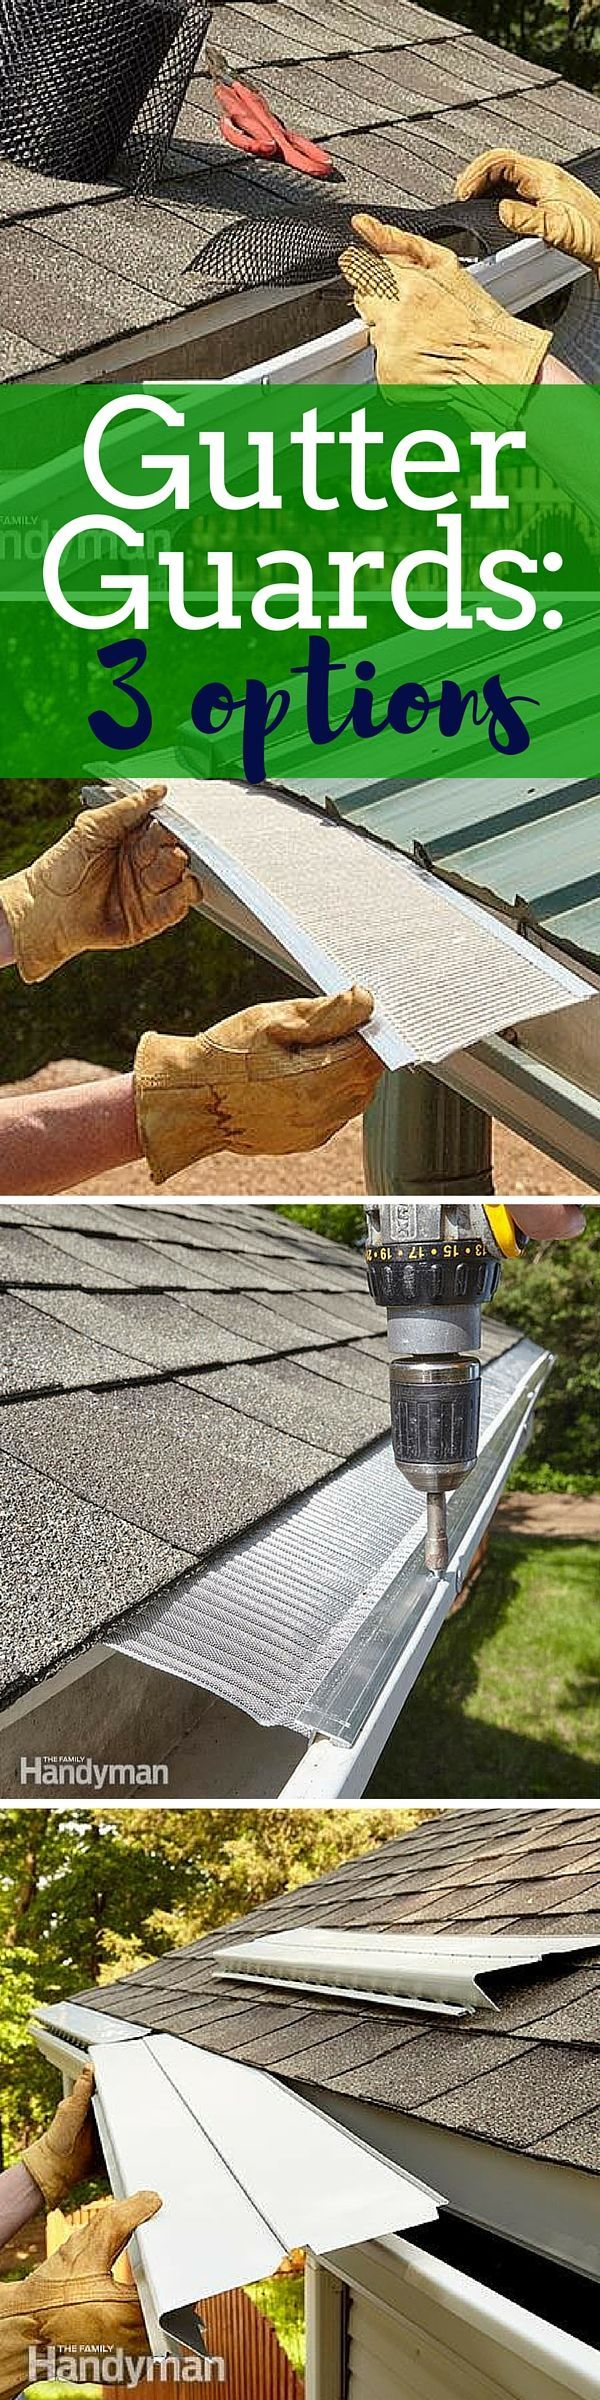 The Best Gutter Guards for Your Home Which type will work best for your house? http://www.familyhandyman.com/roof/gutter-repair/the-best-gutter-guards-for-your-home/view-all